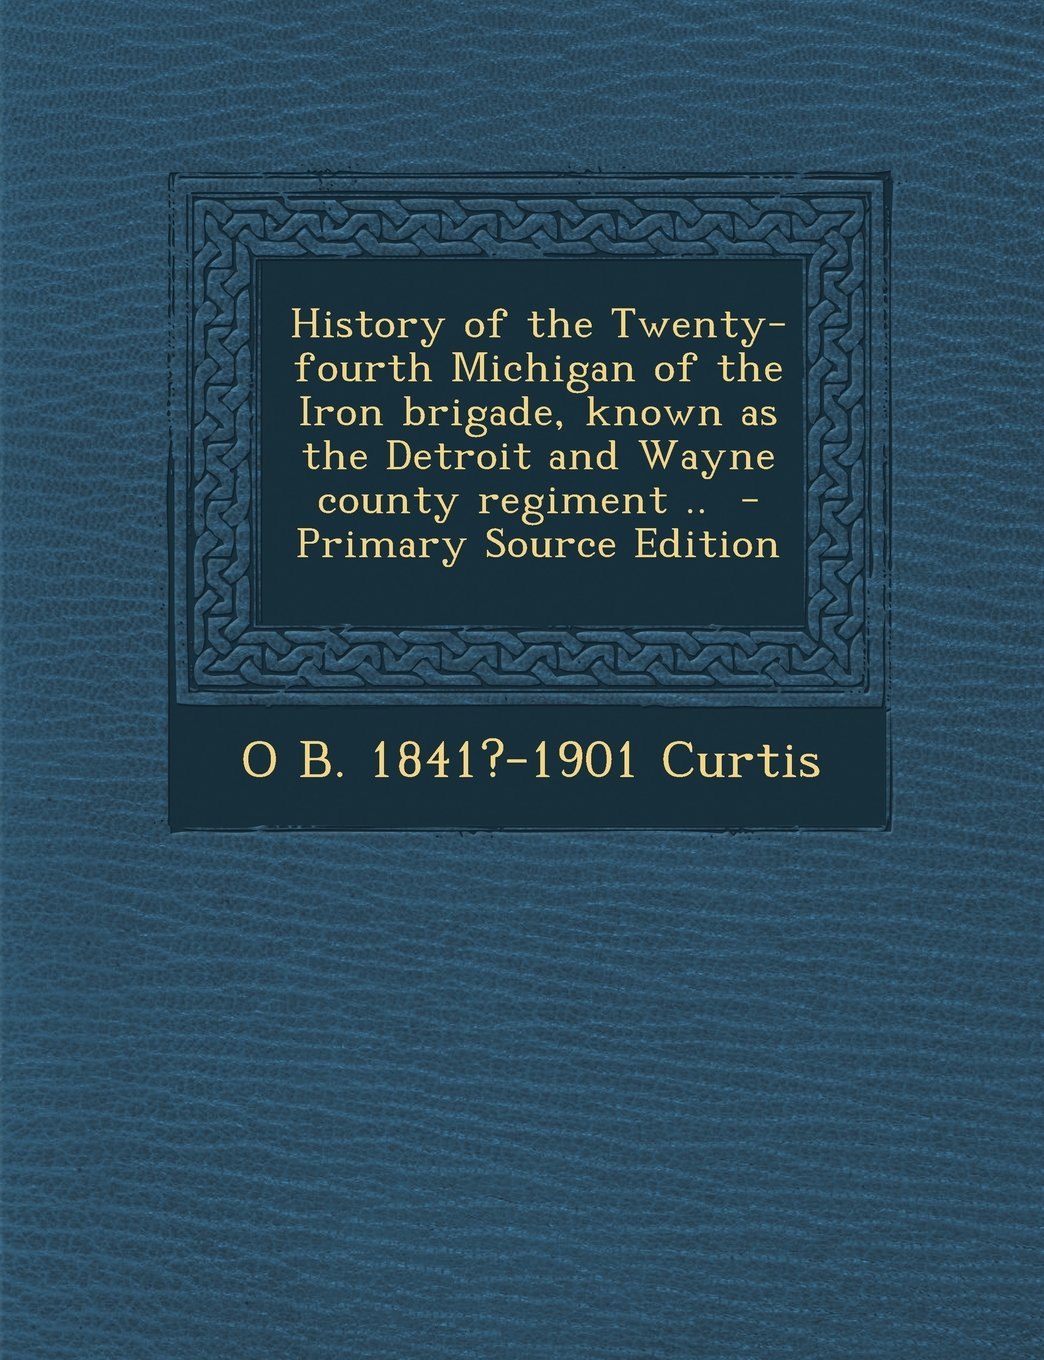 Download History of the Twenty-fourth Michigan of the Iron brigade, known as the Detroit and Wayne county regiment .. pdf